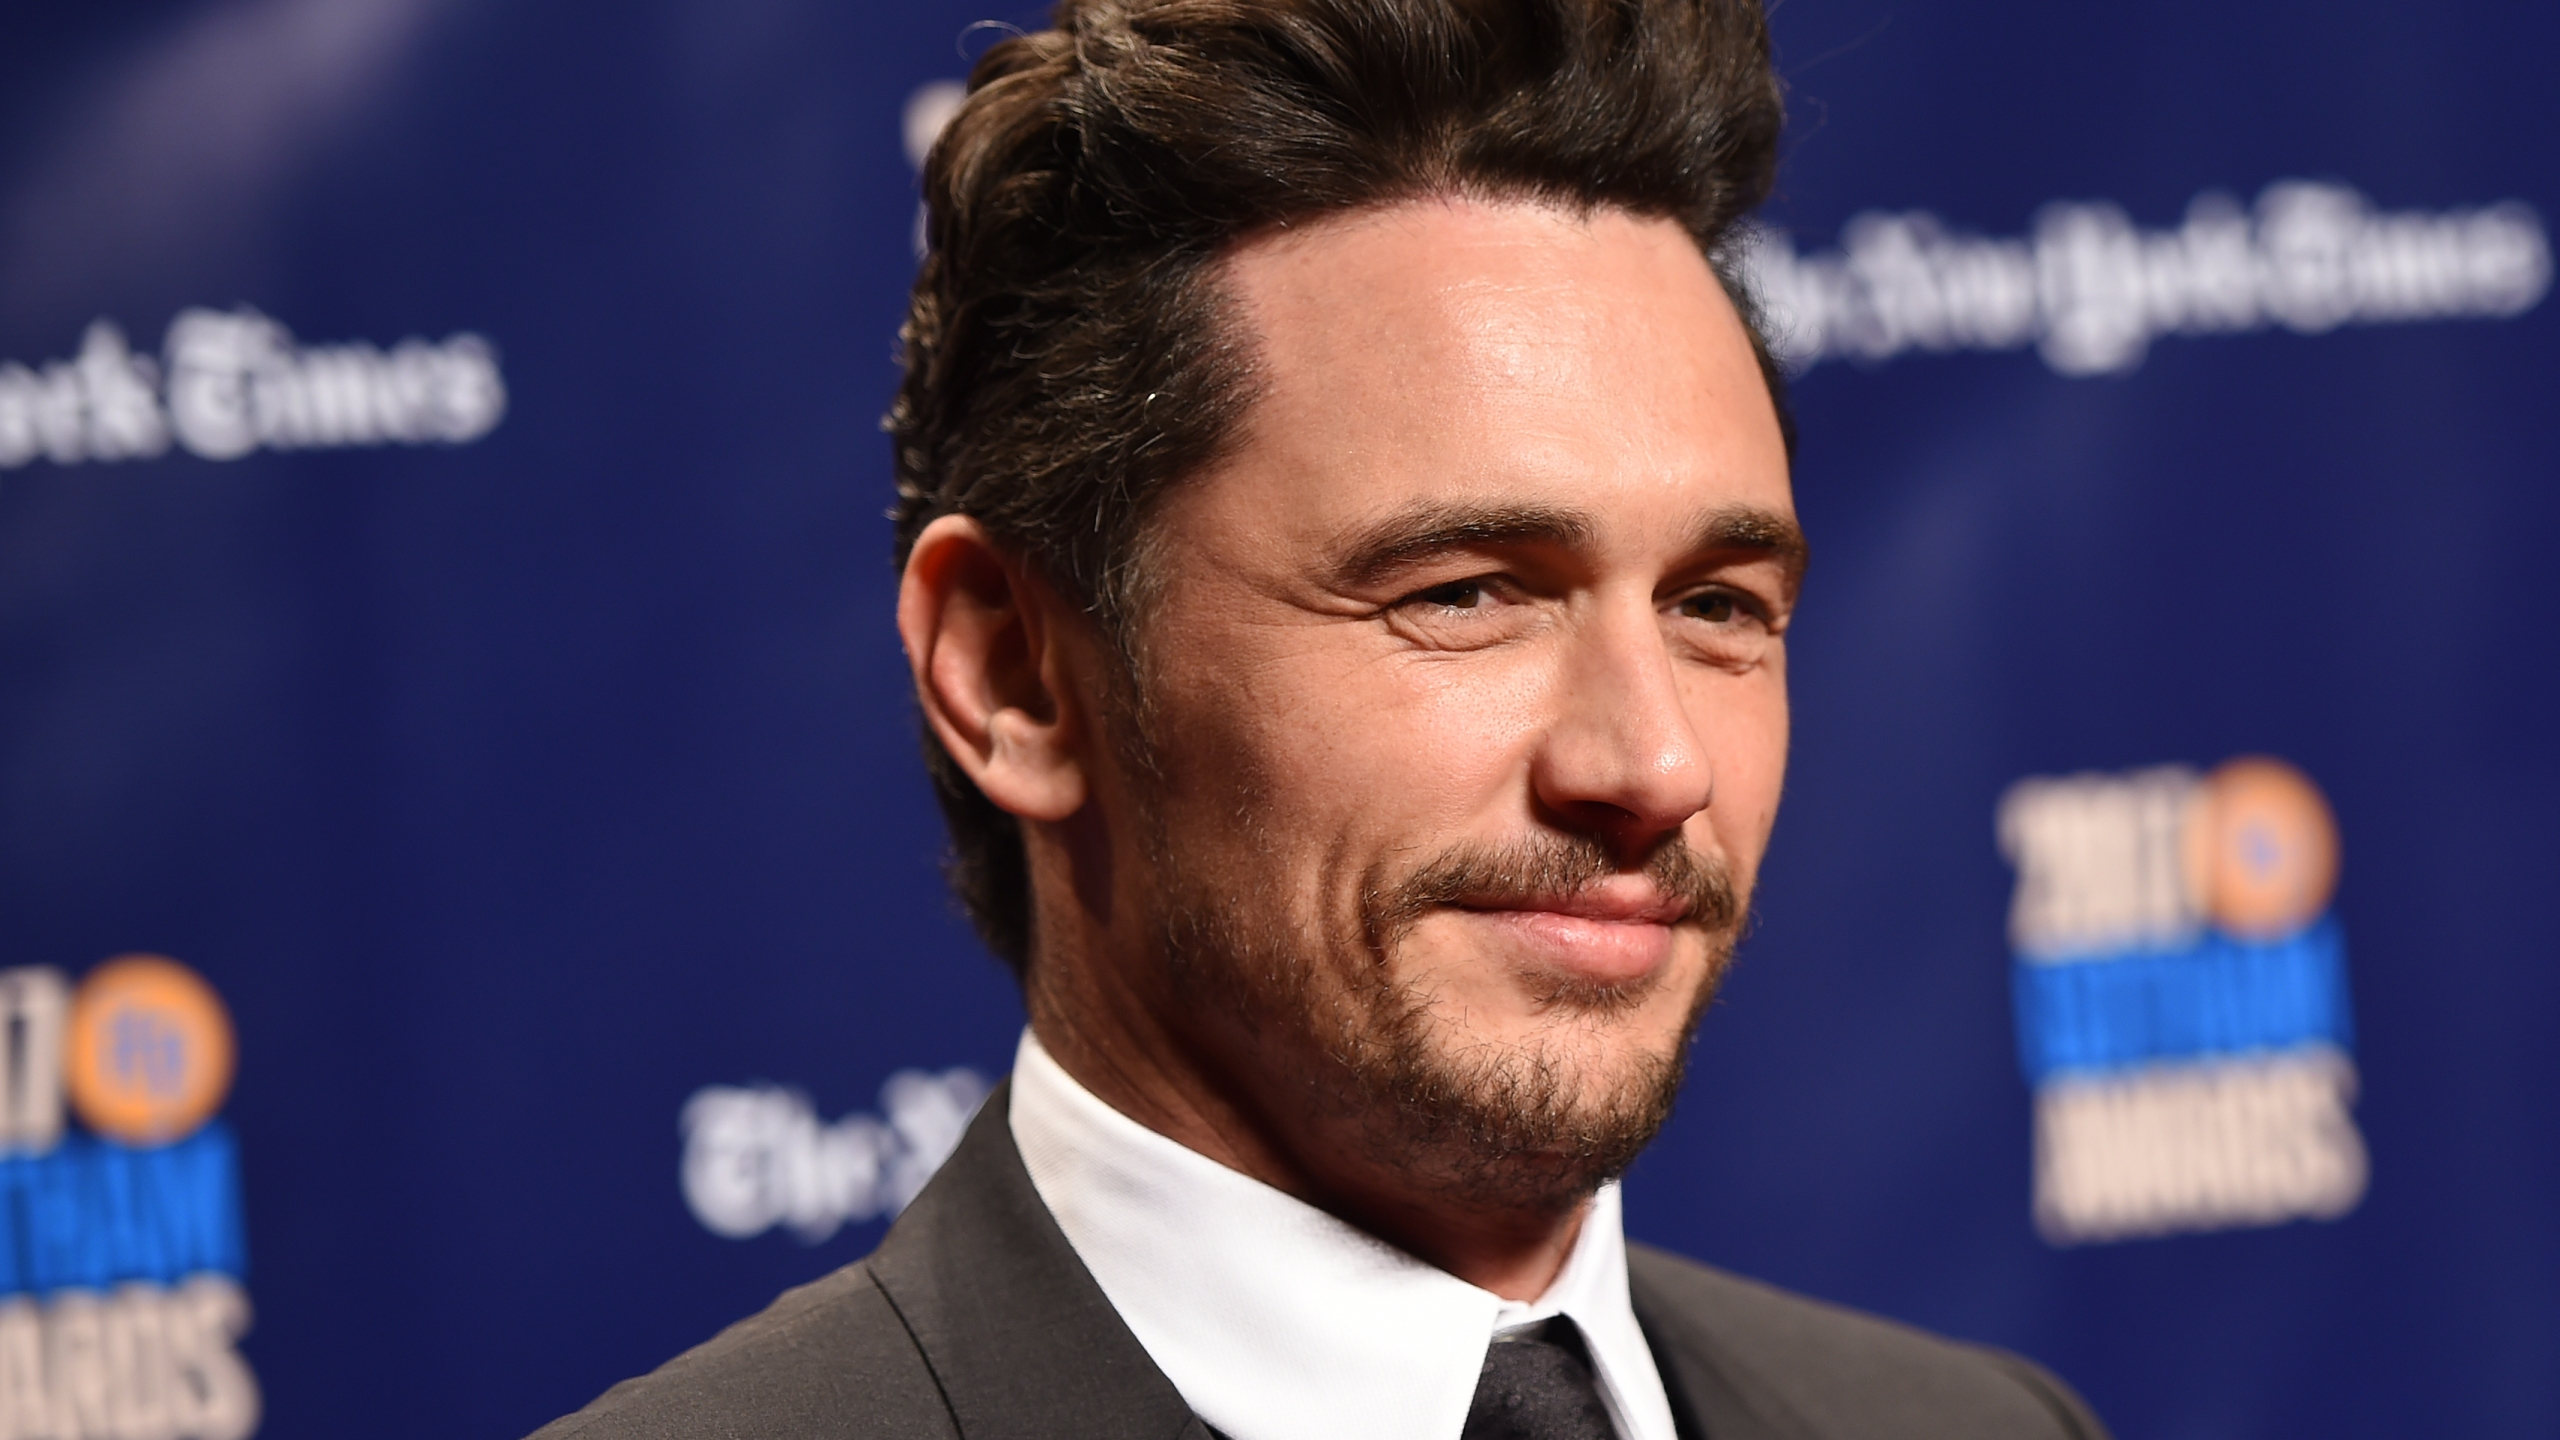 Actor James Franco attends the Gotham Independent Film Awards on Nov. 27, 2017, in New York City. (Credit: Dimitrios Kambouris / Getty Images)